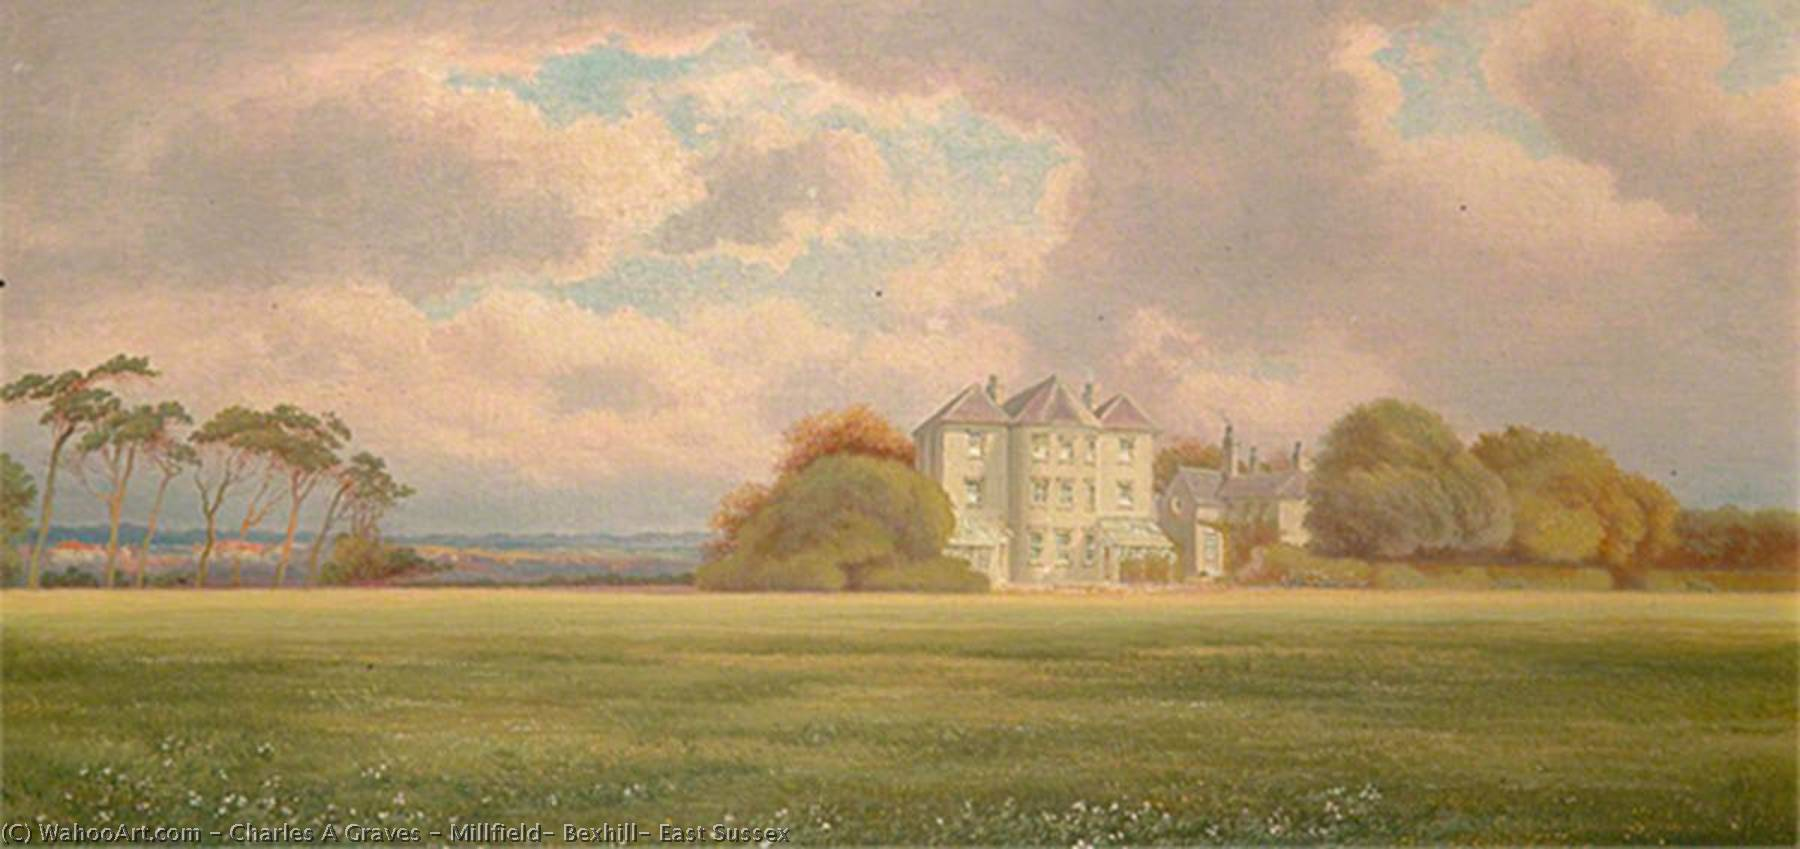 Millfield, Bexhill, East Sussex, 1904 by Charles A Graves | Art Reproduction | ArtsDot.com